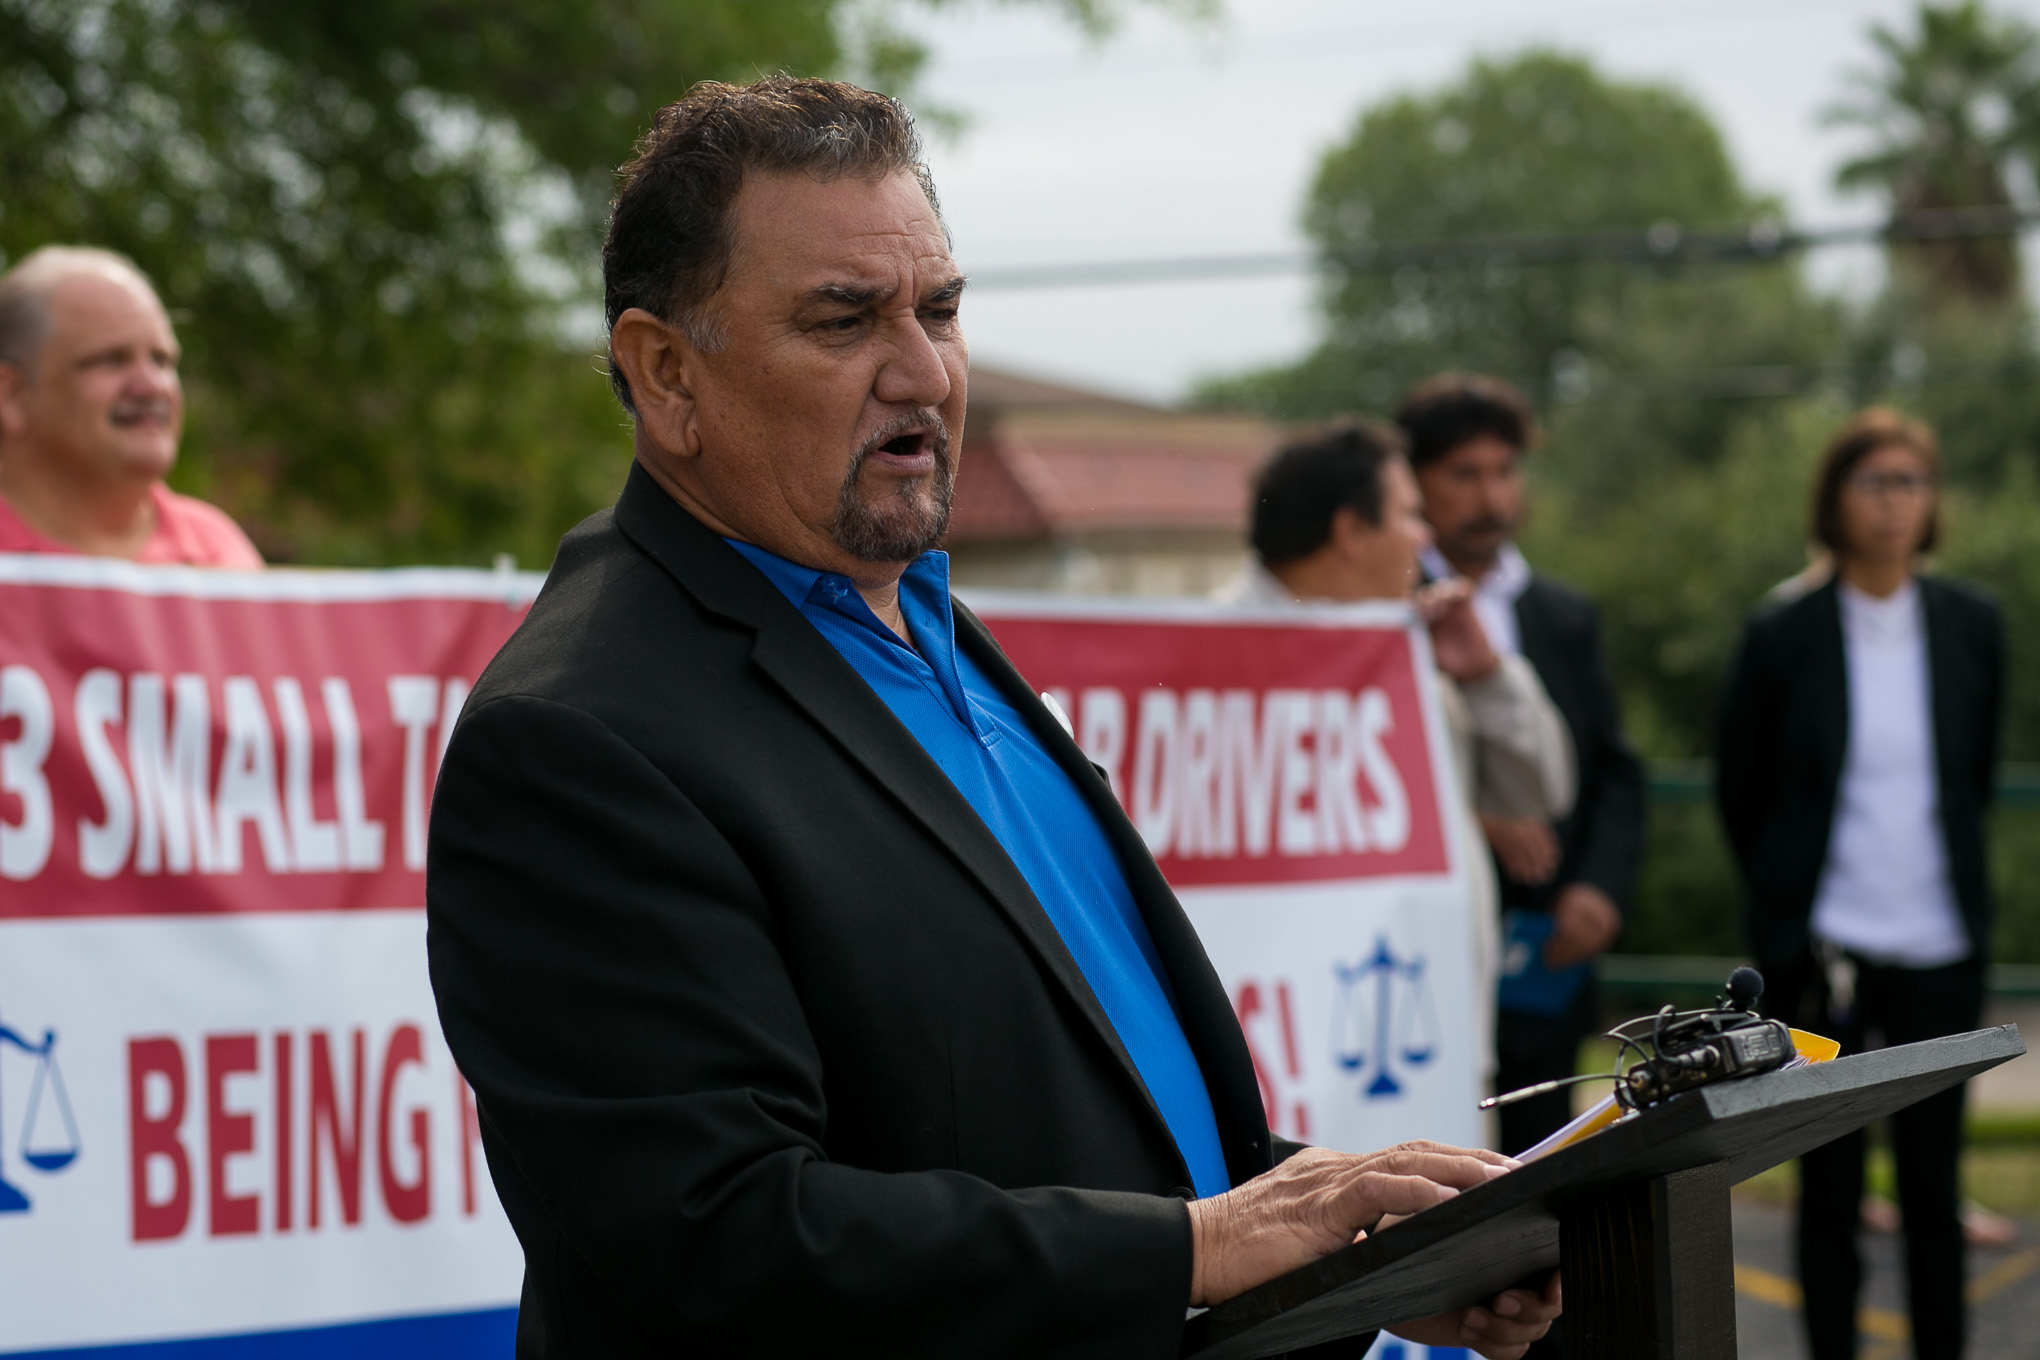 Transportation Safety Coalition member Robert Gonzales asks for the same rights as Rideshare drivers. Photo by Kathryn Boyd-Batstone.